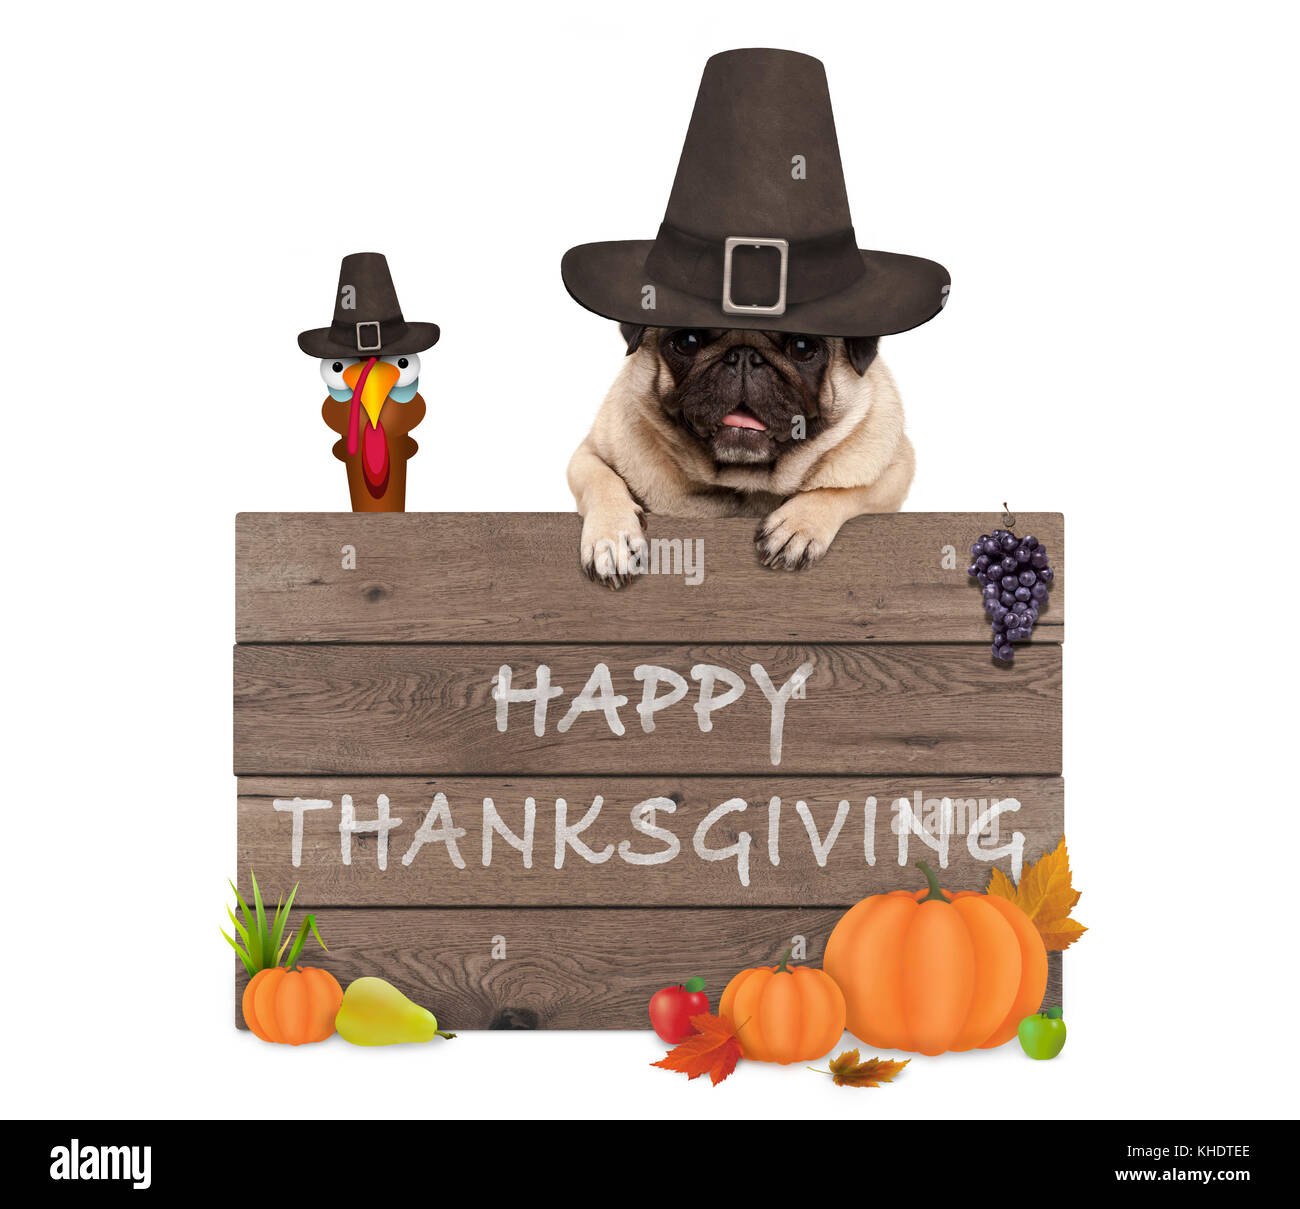 funny turkey and pug dog wearing pilgrim hat for Thanksgiving day and wooden sign with text happy thanksgiving, - Stock Image